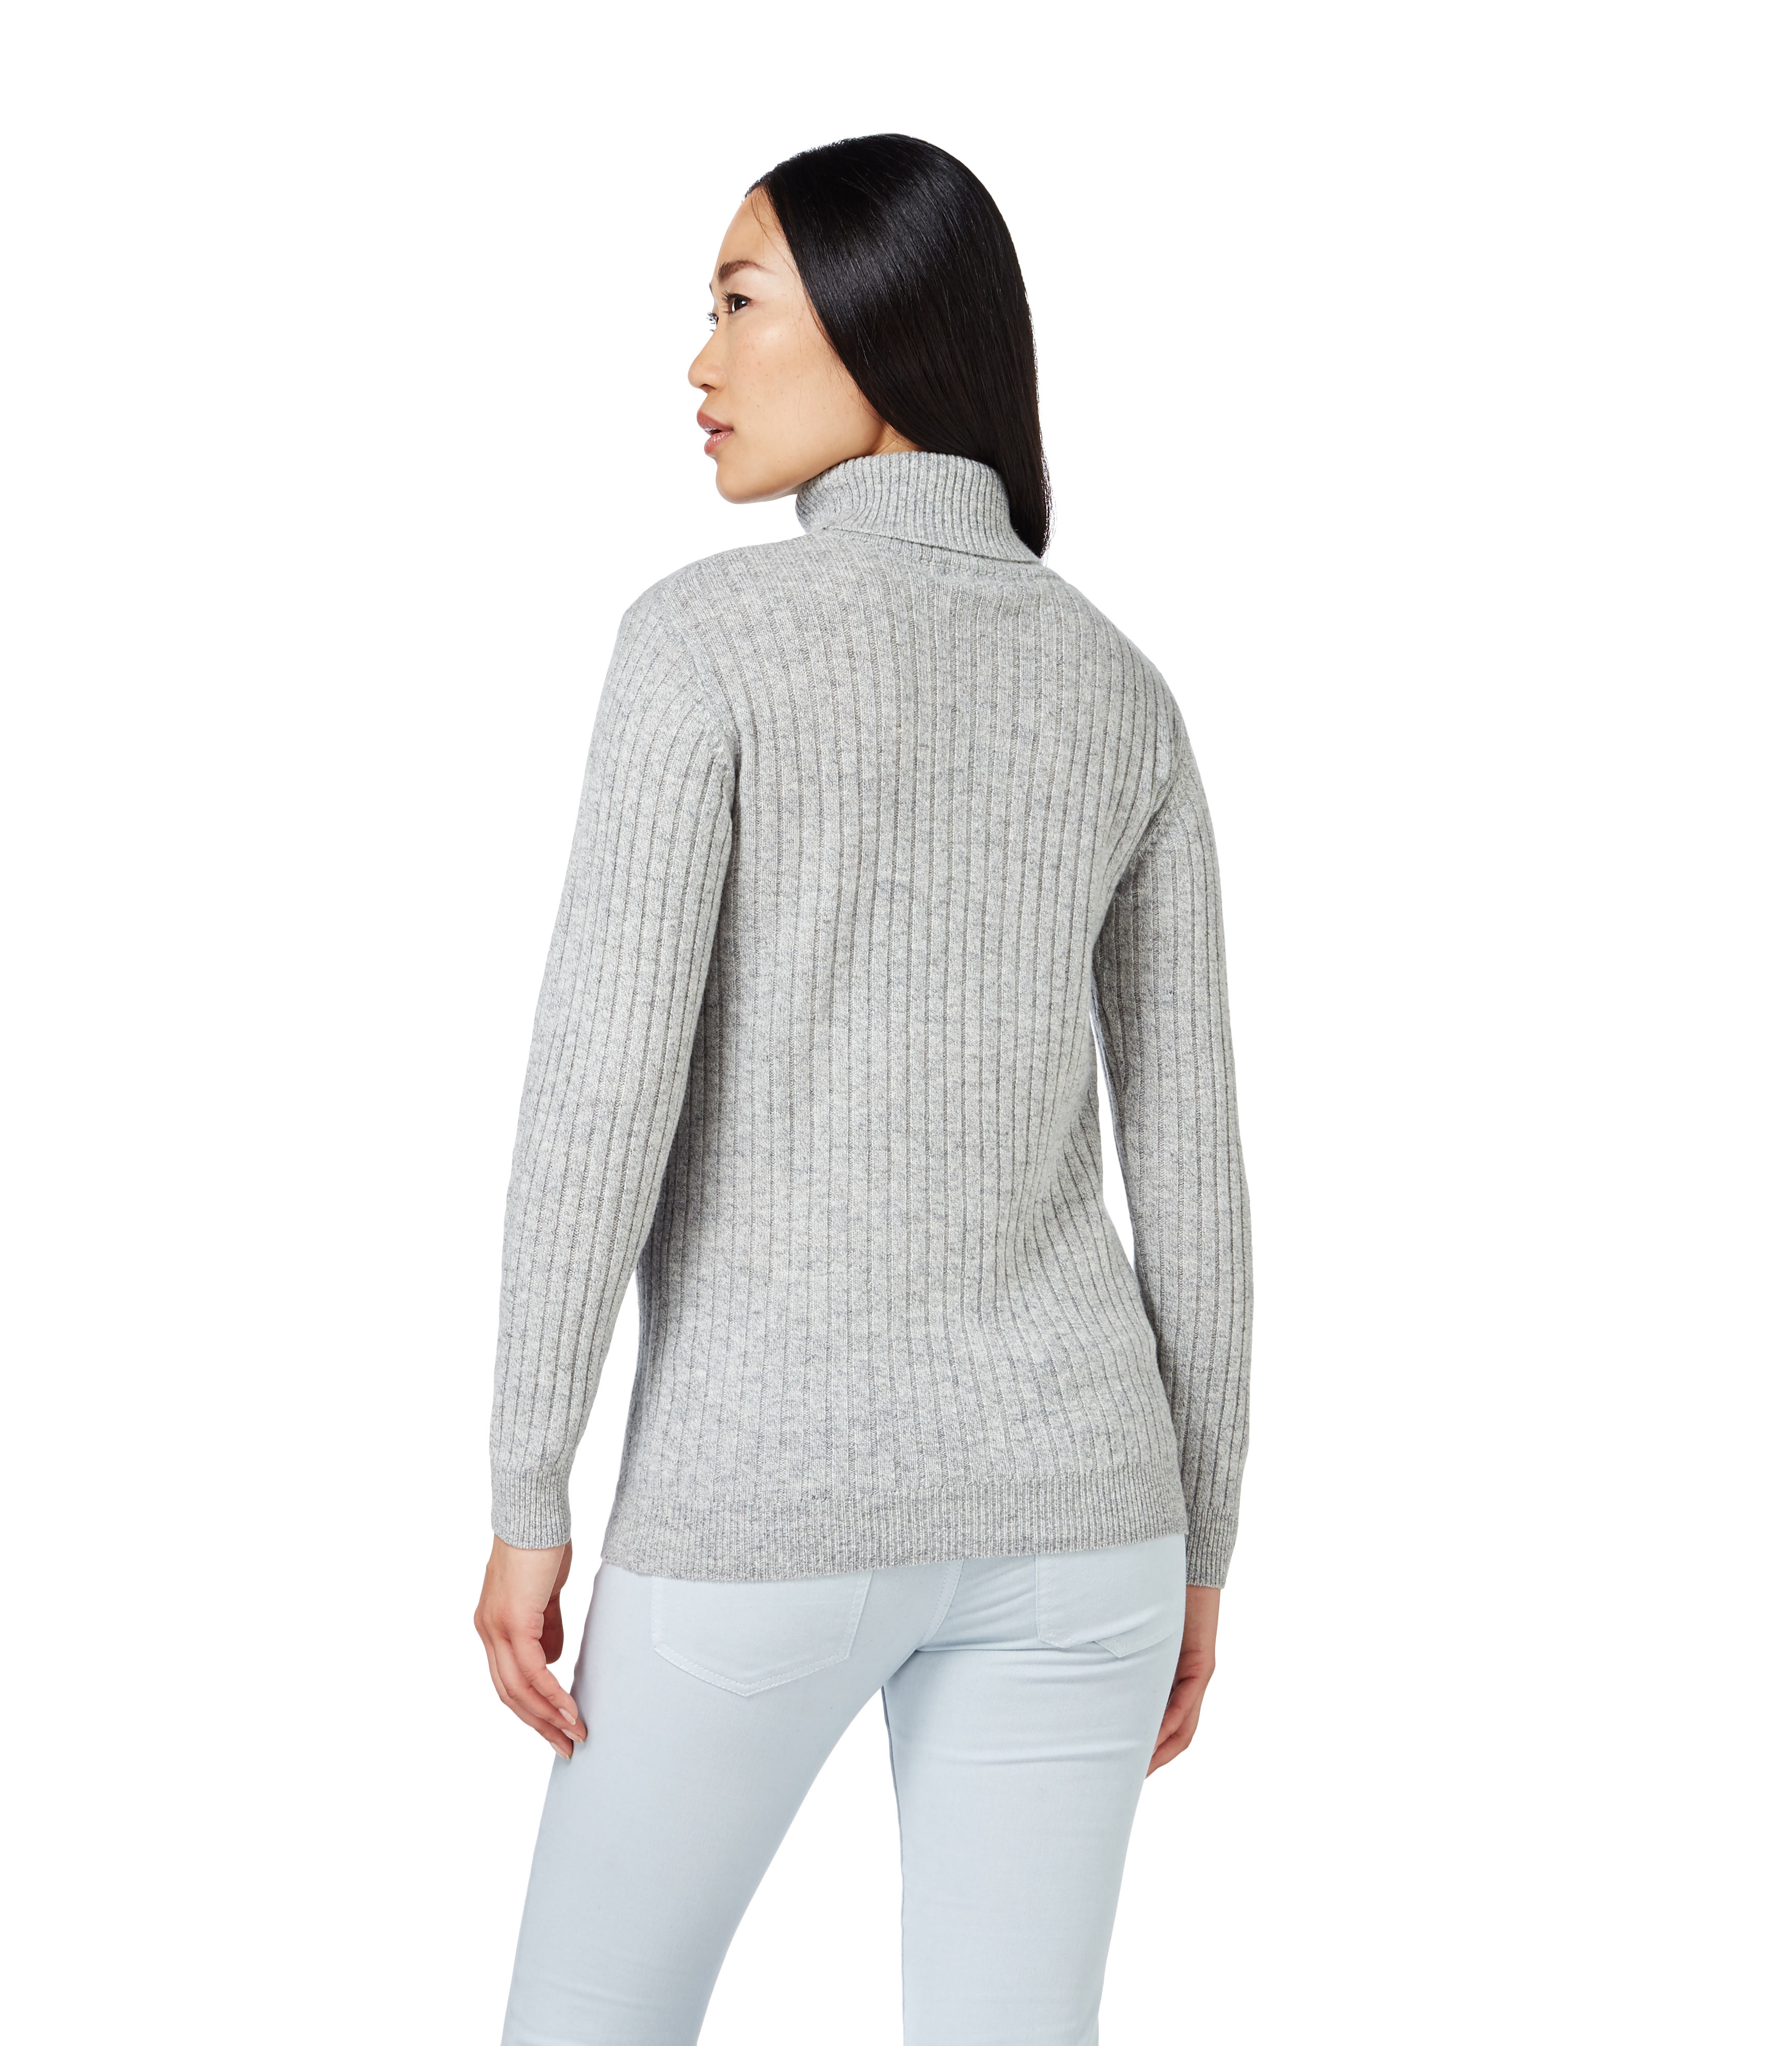 Shop from the world's largest selection and best deals for Lambswool Vintage Jumpers & Cardigans for Women. Free delivery and free returns on eBay Plus items.